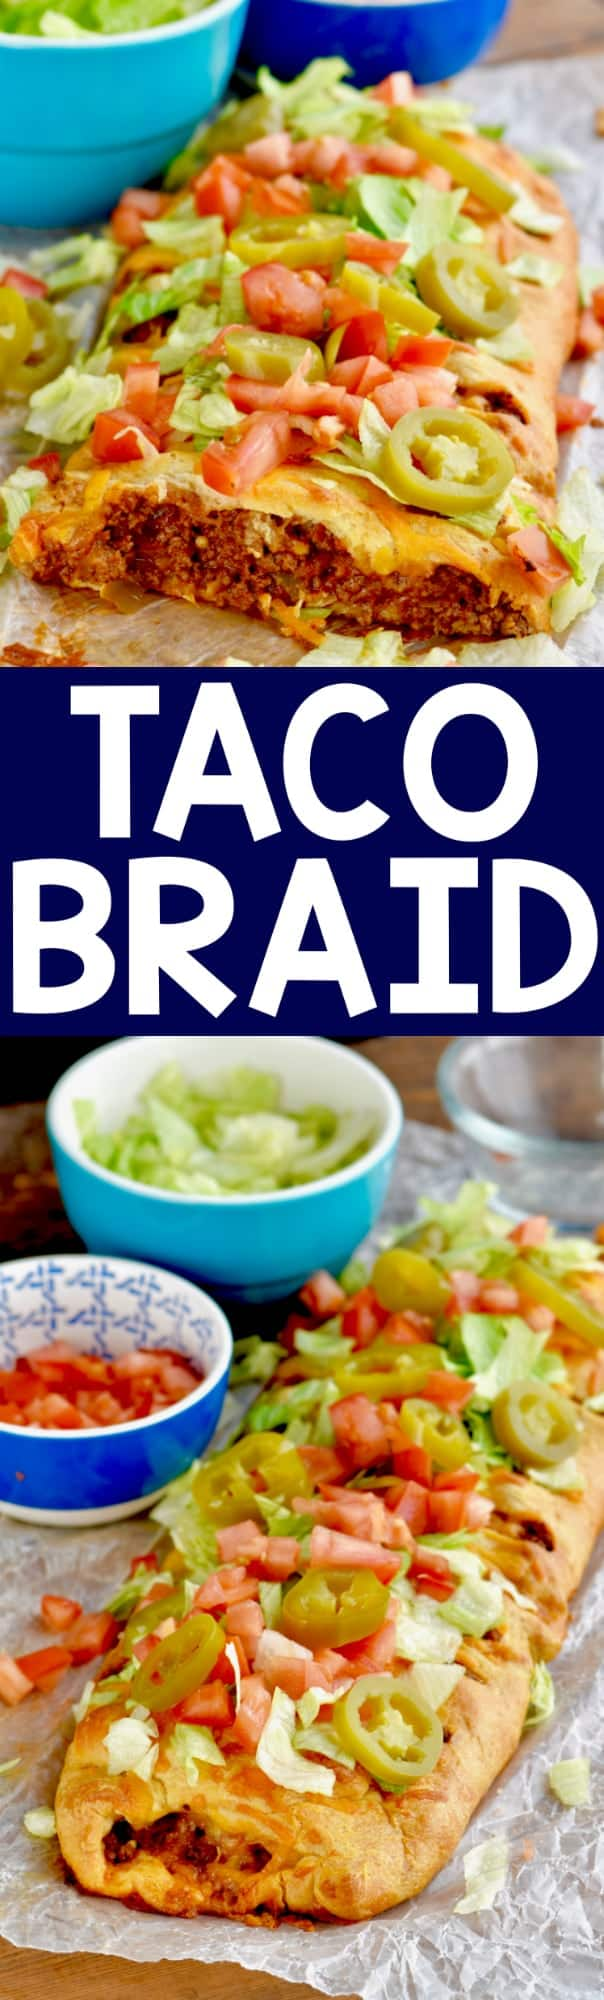 The taco braid has a beautiful golden brown color with taco meat in the middle and topped with lettuce, tomatoes, and jalapeños.